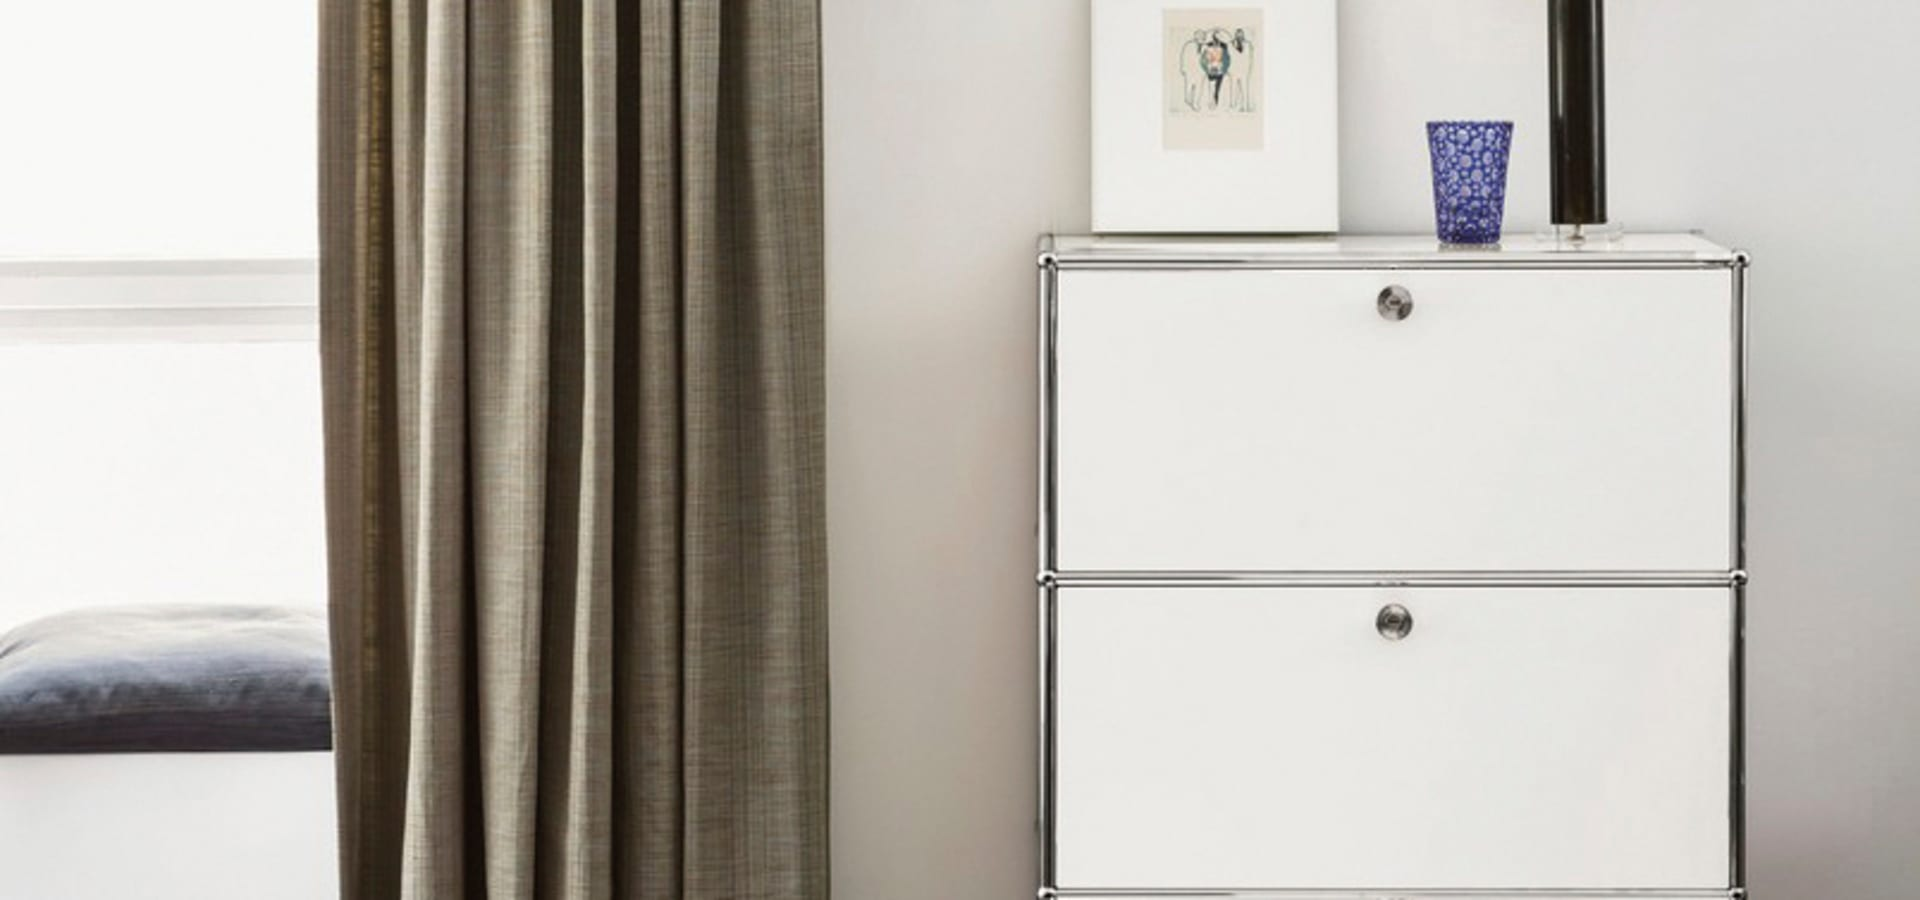 Usm haller highboard mit 3 klappen von wohn design by blow for Blow out karlsruhe